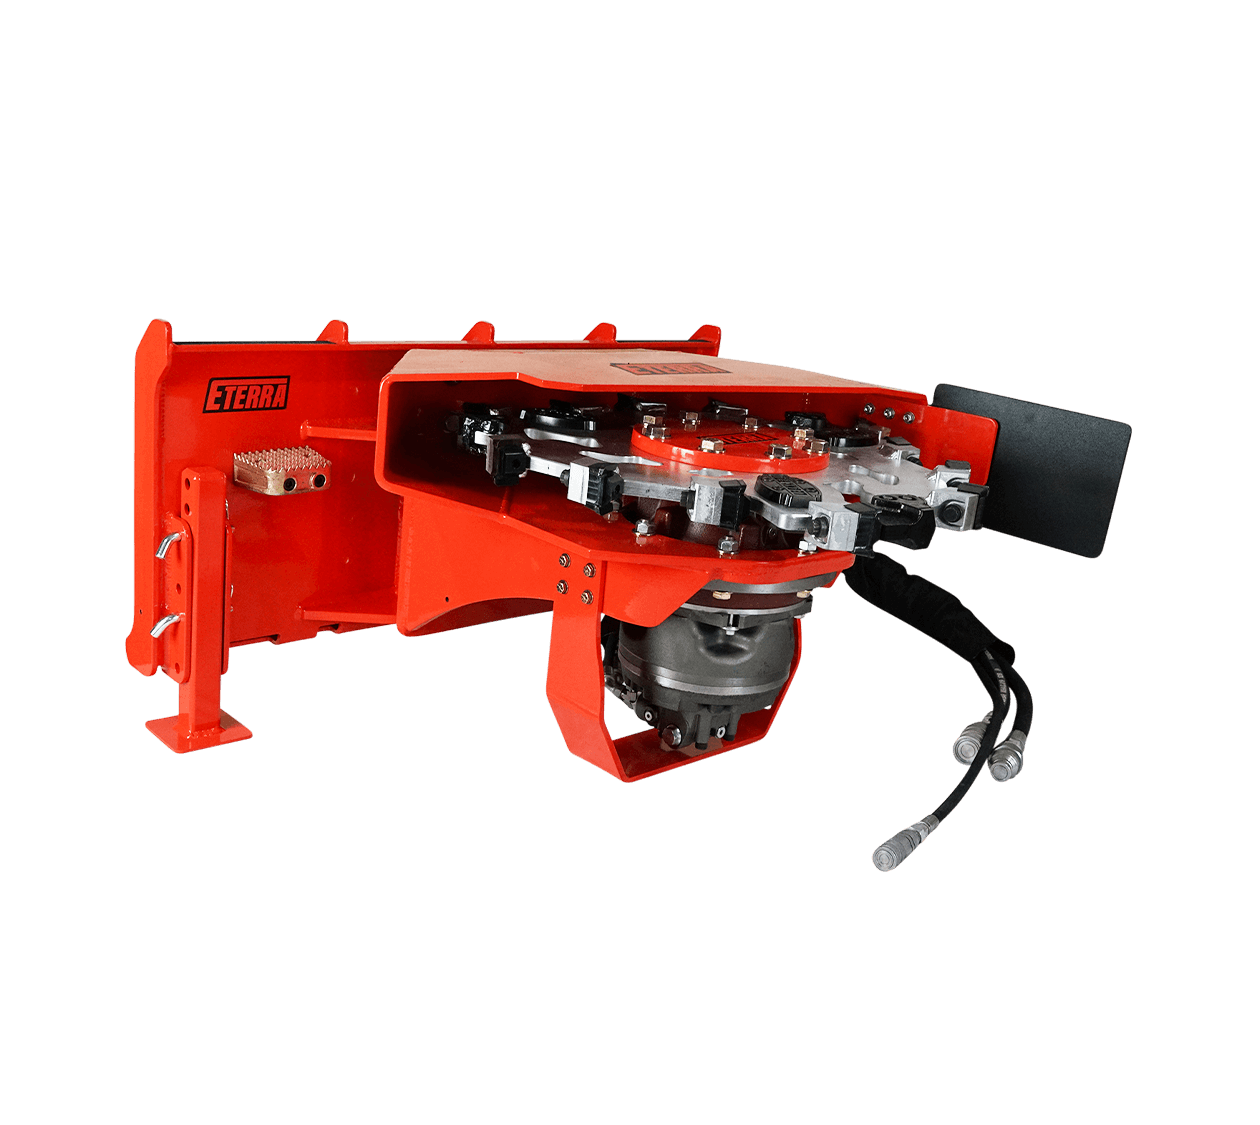 Eterra Vortex Skid Steer Stump Grinder is built to last. The Housing went through multiple iterations before it took its ultra duty form.